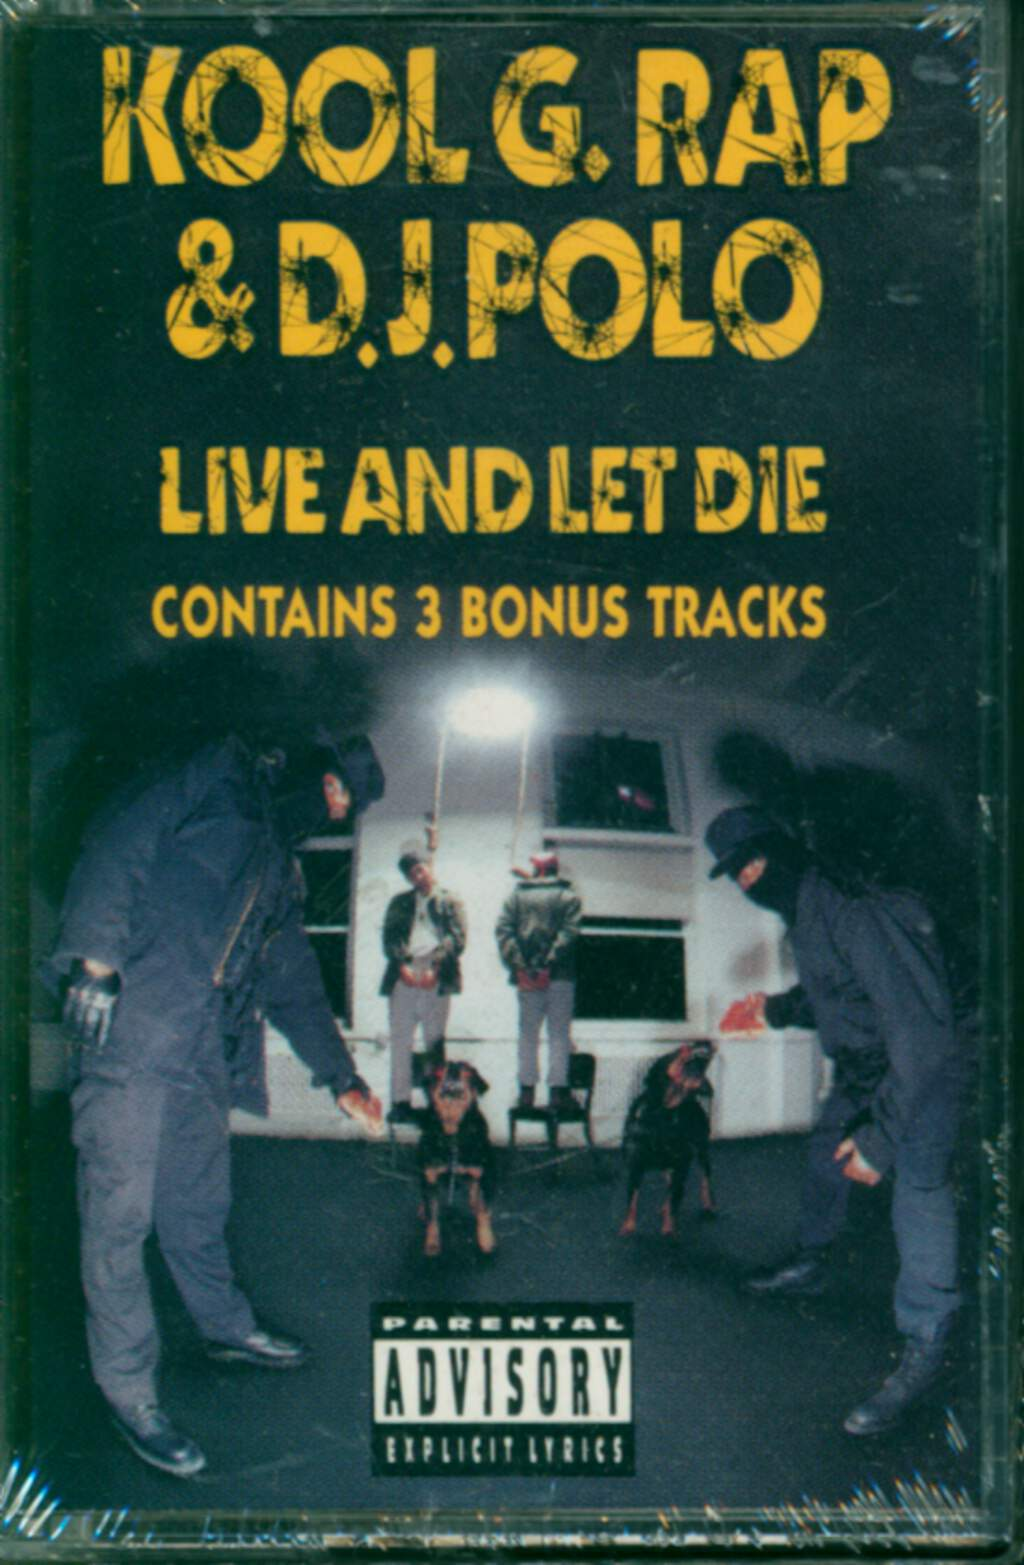 Kool G Rap & D.J. Polo: Live And Let Die, Tape